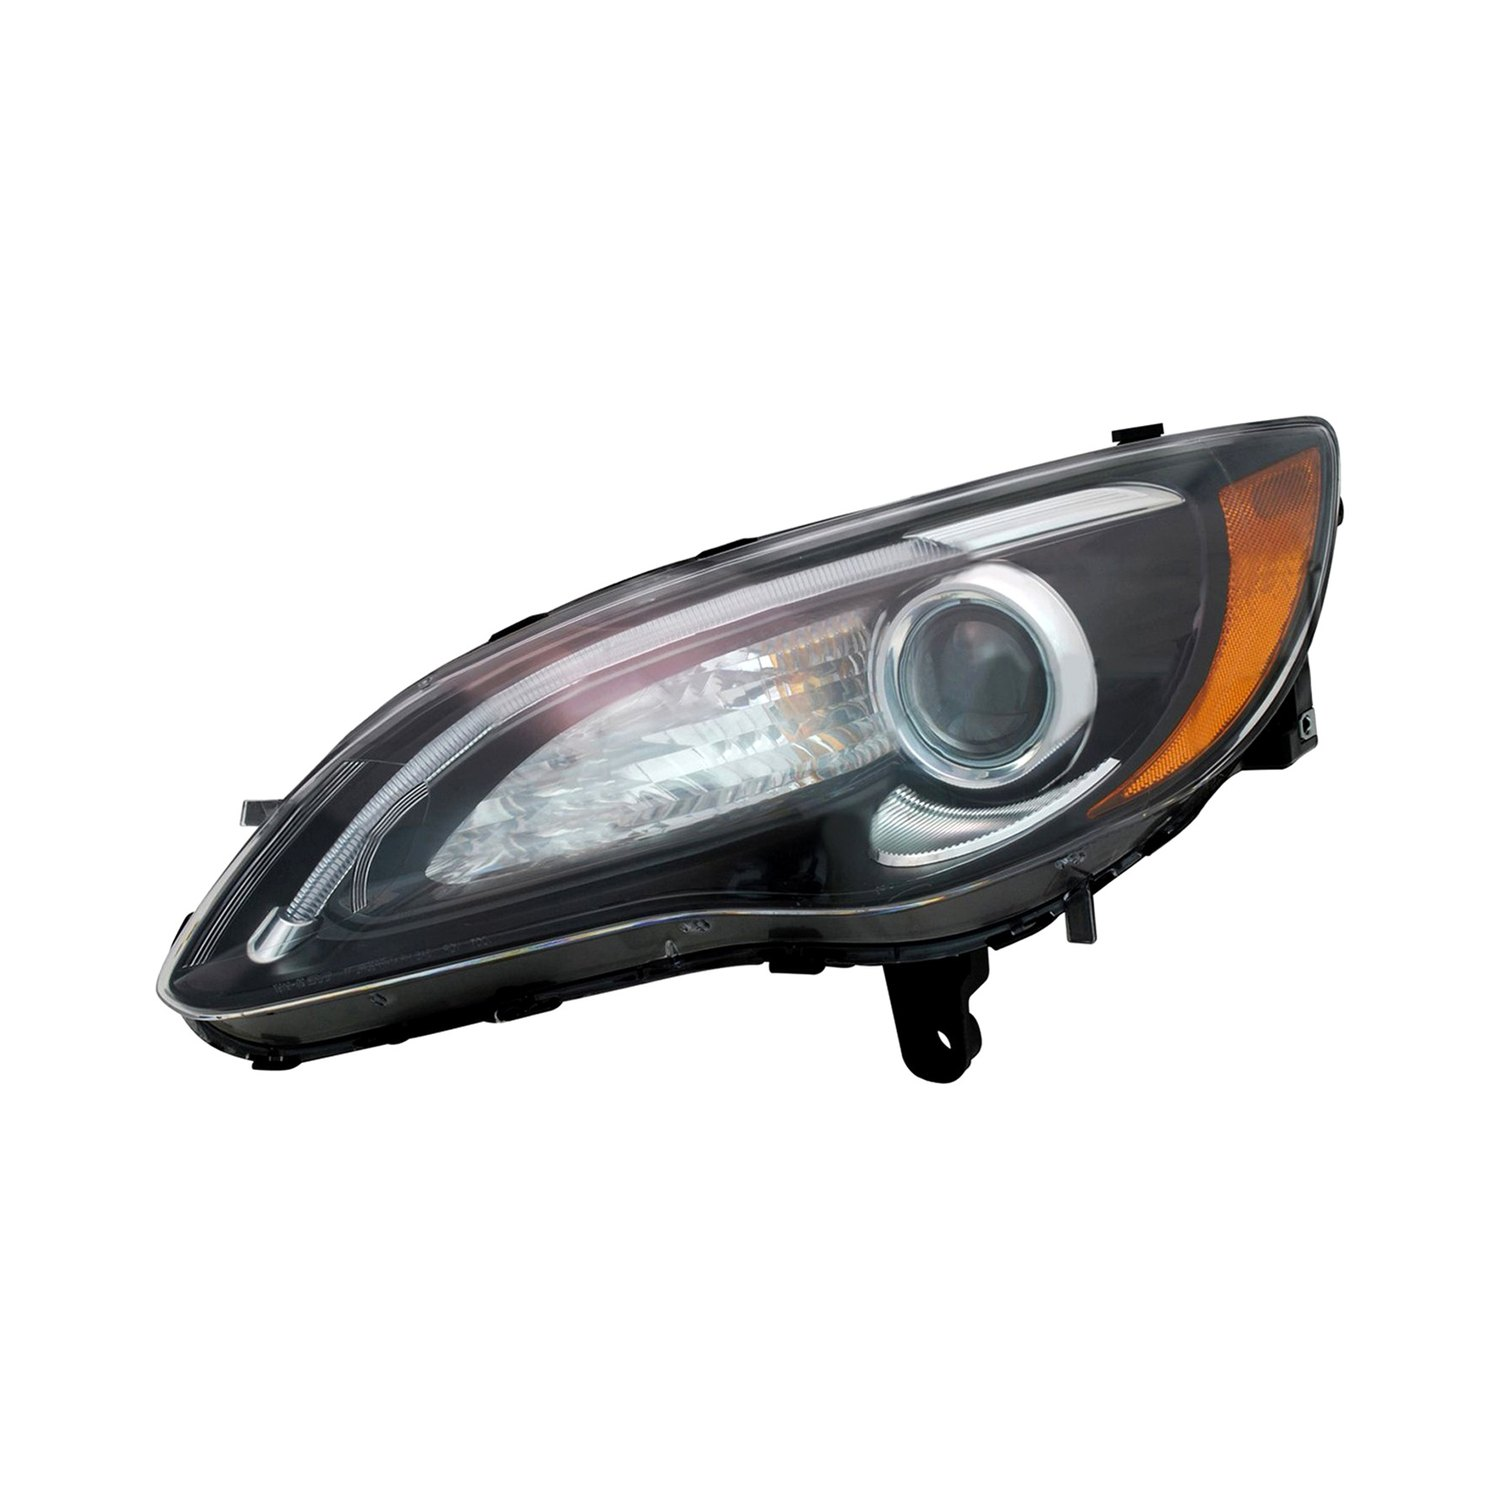 tyc chrysler 200 2012 replacement headlight. Black Bedroom Furniture Sets. Home Design Ideas